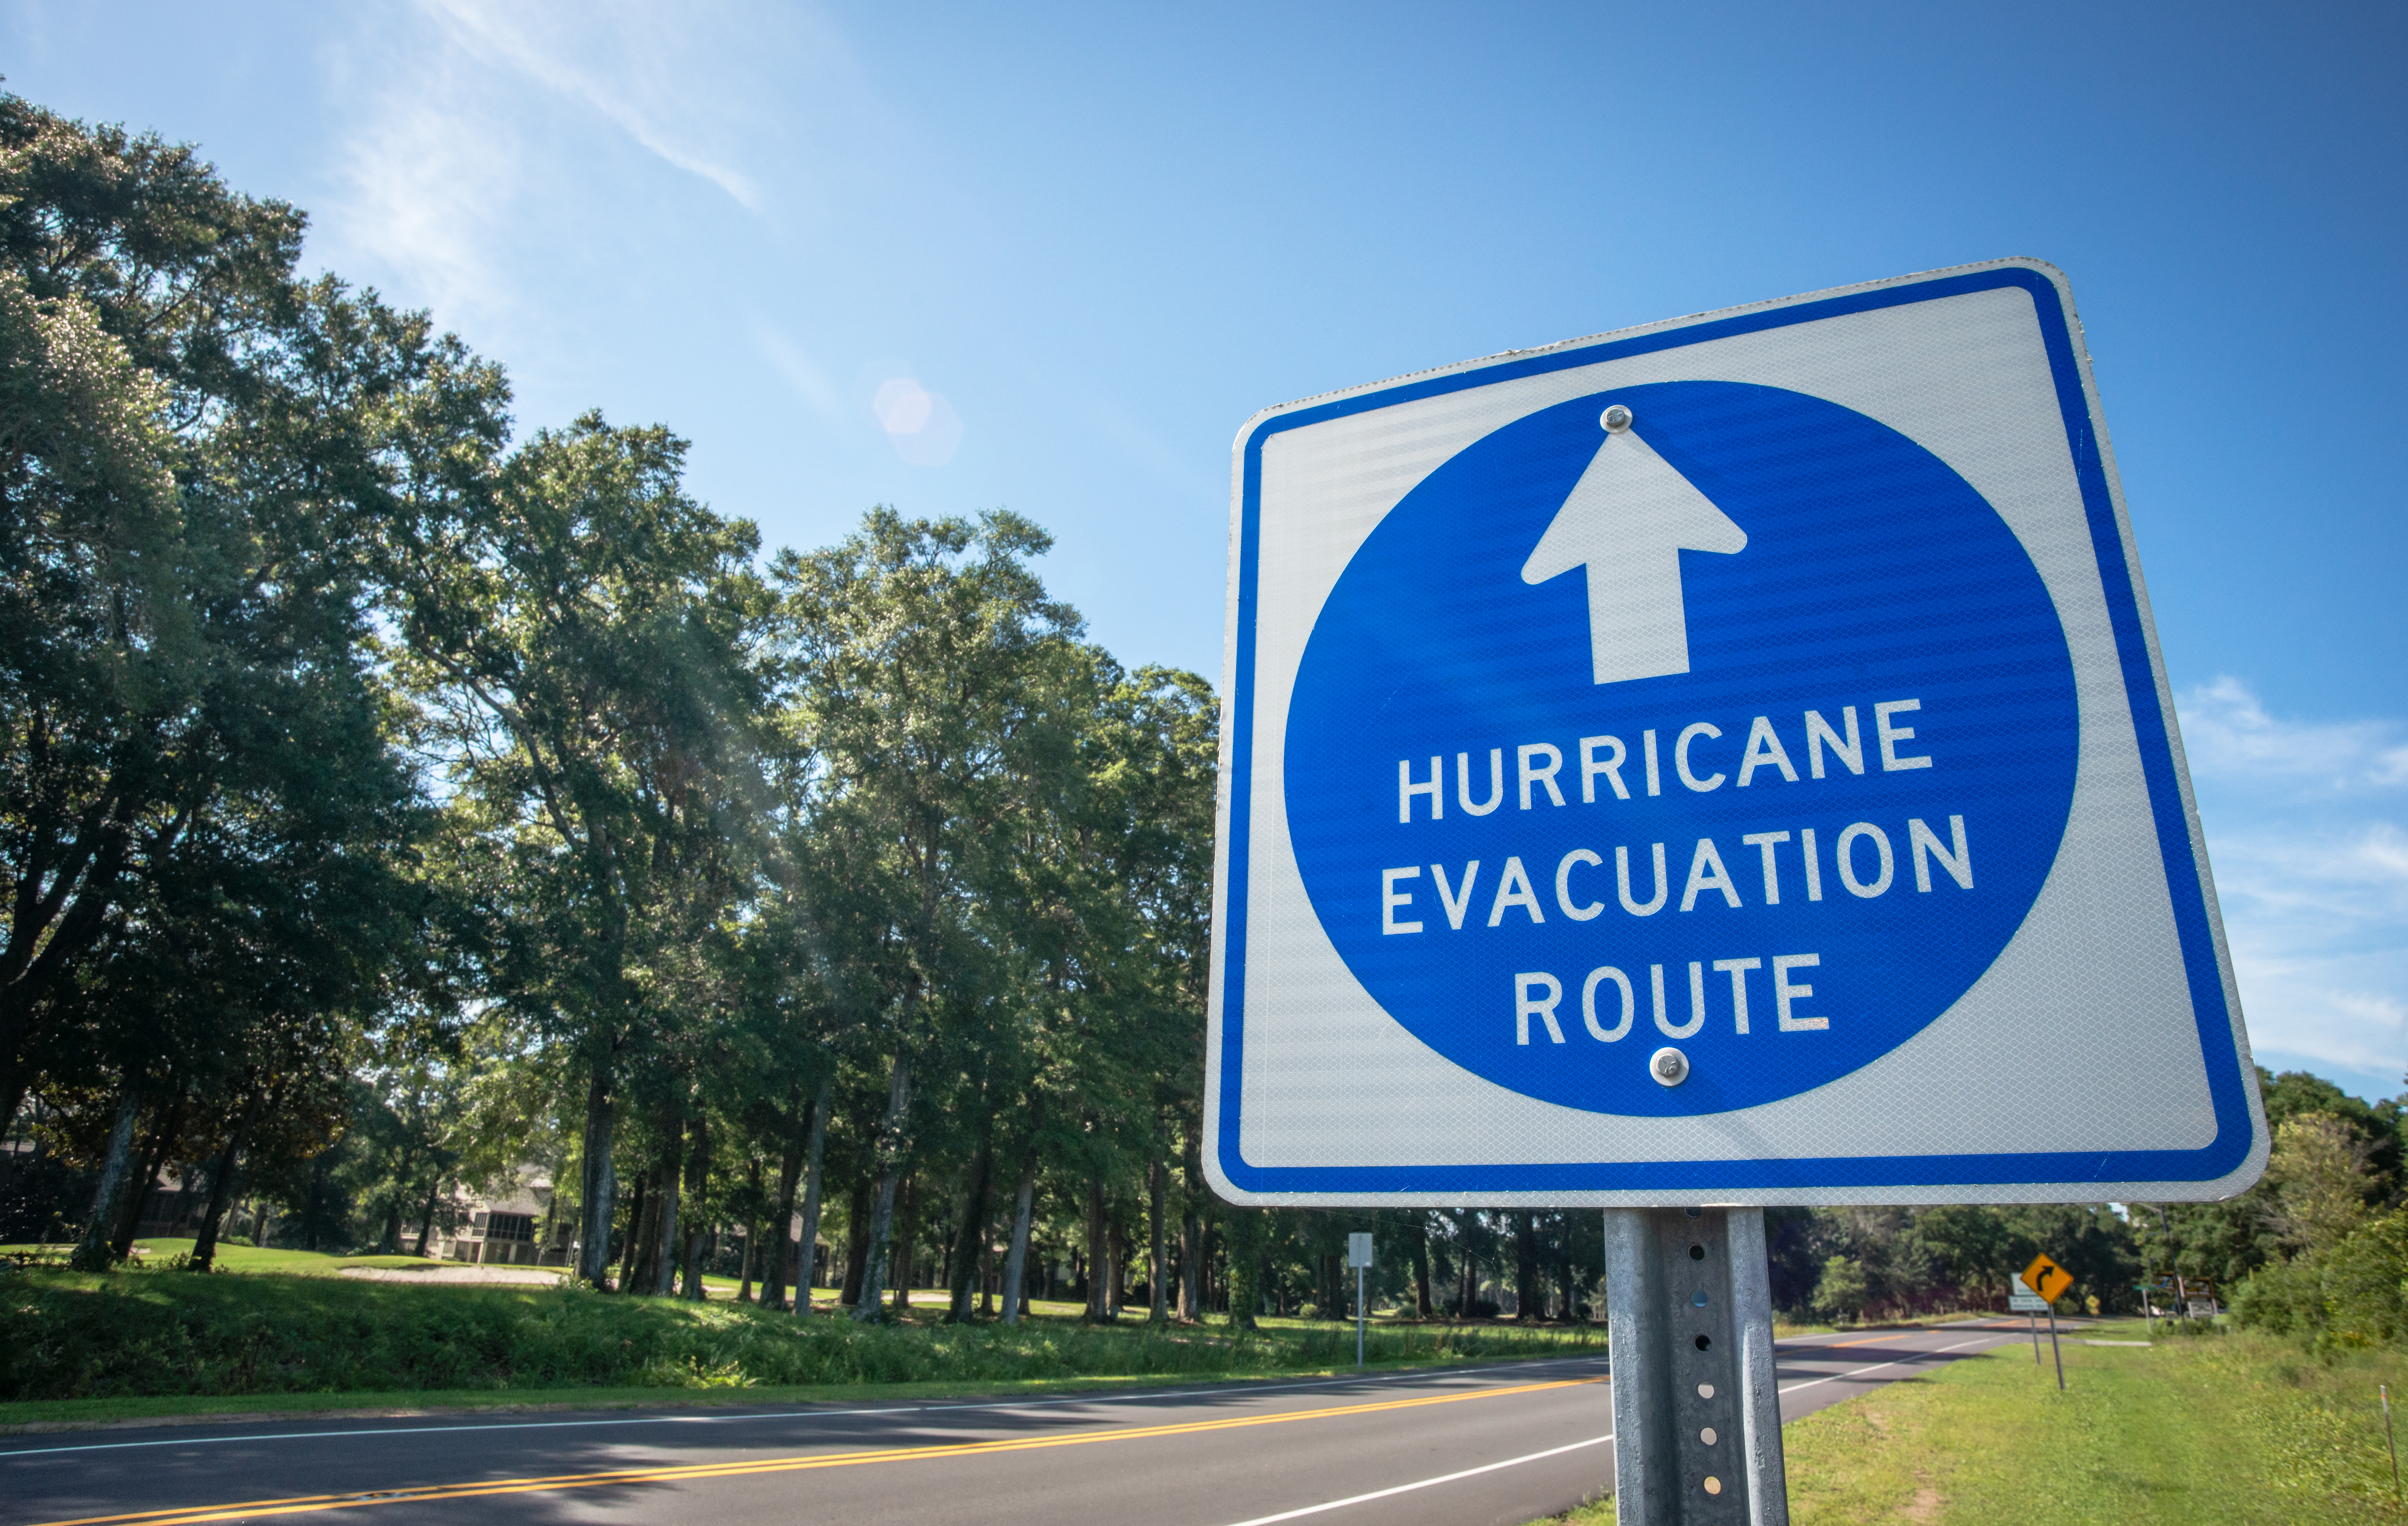 Hurricane emergency route